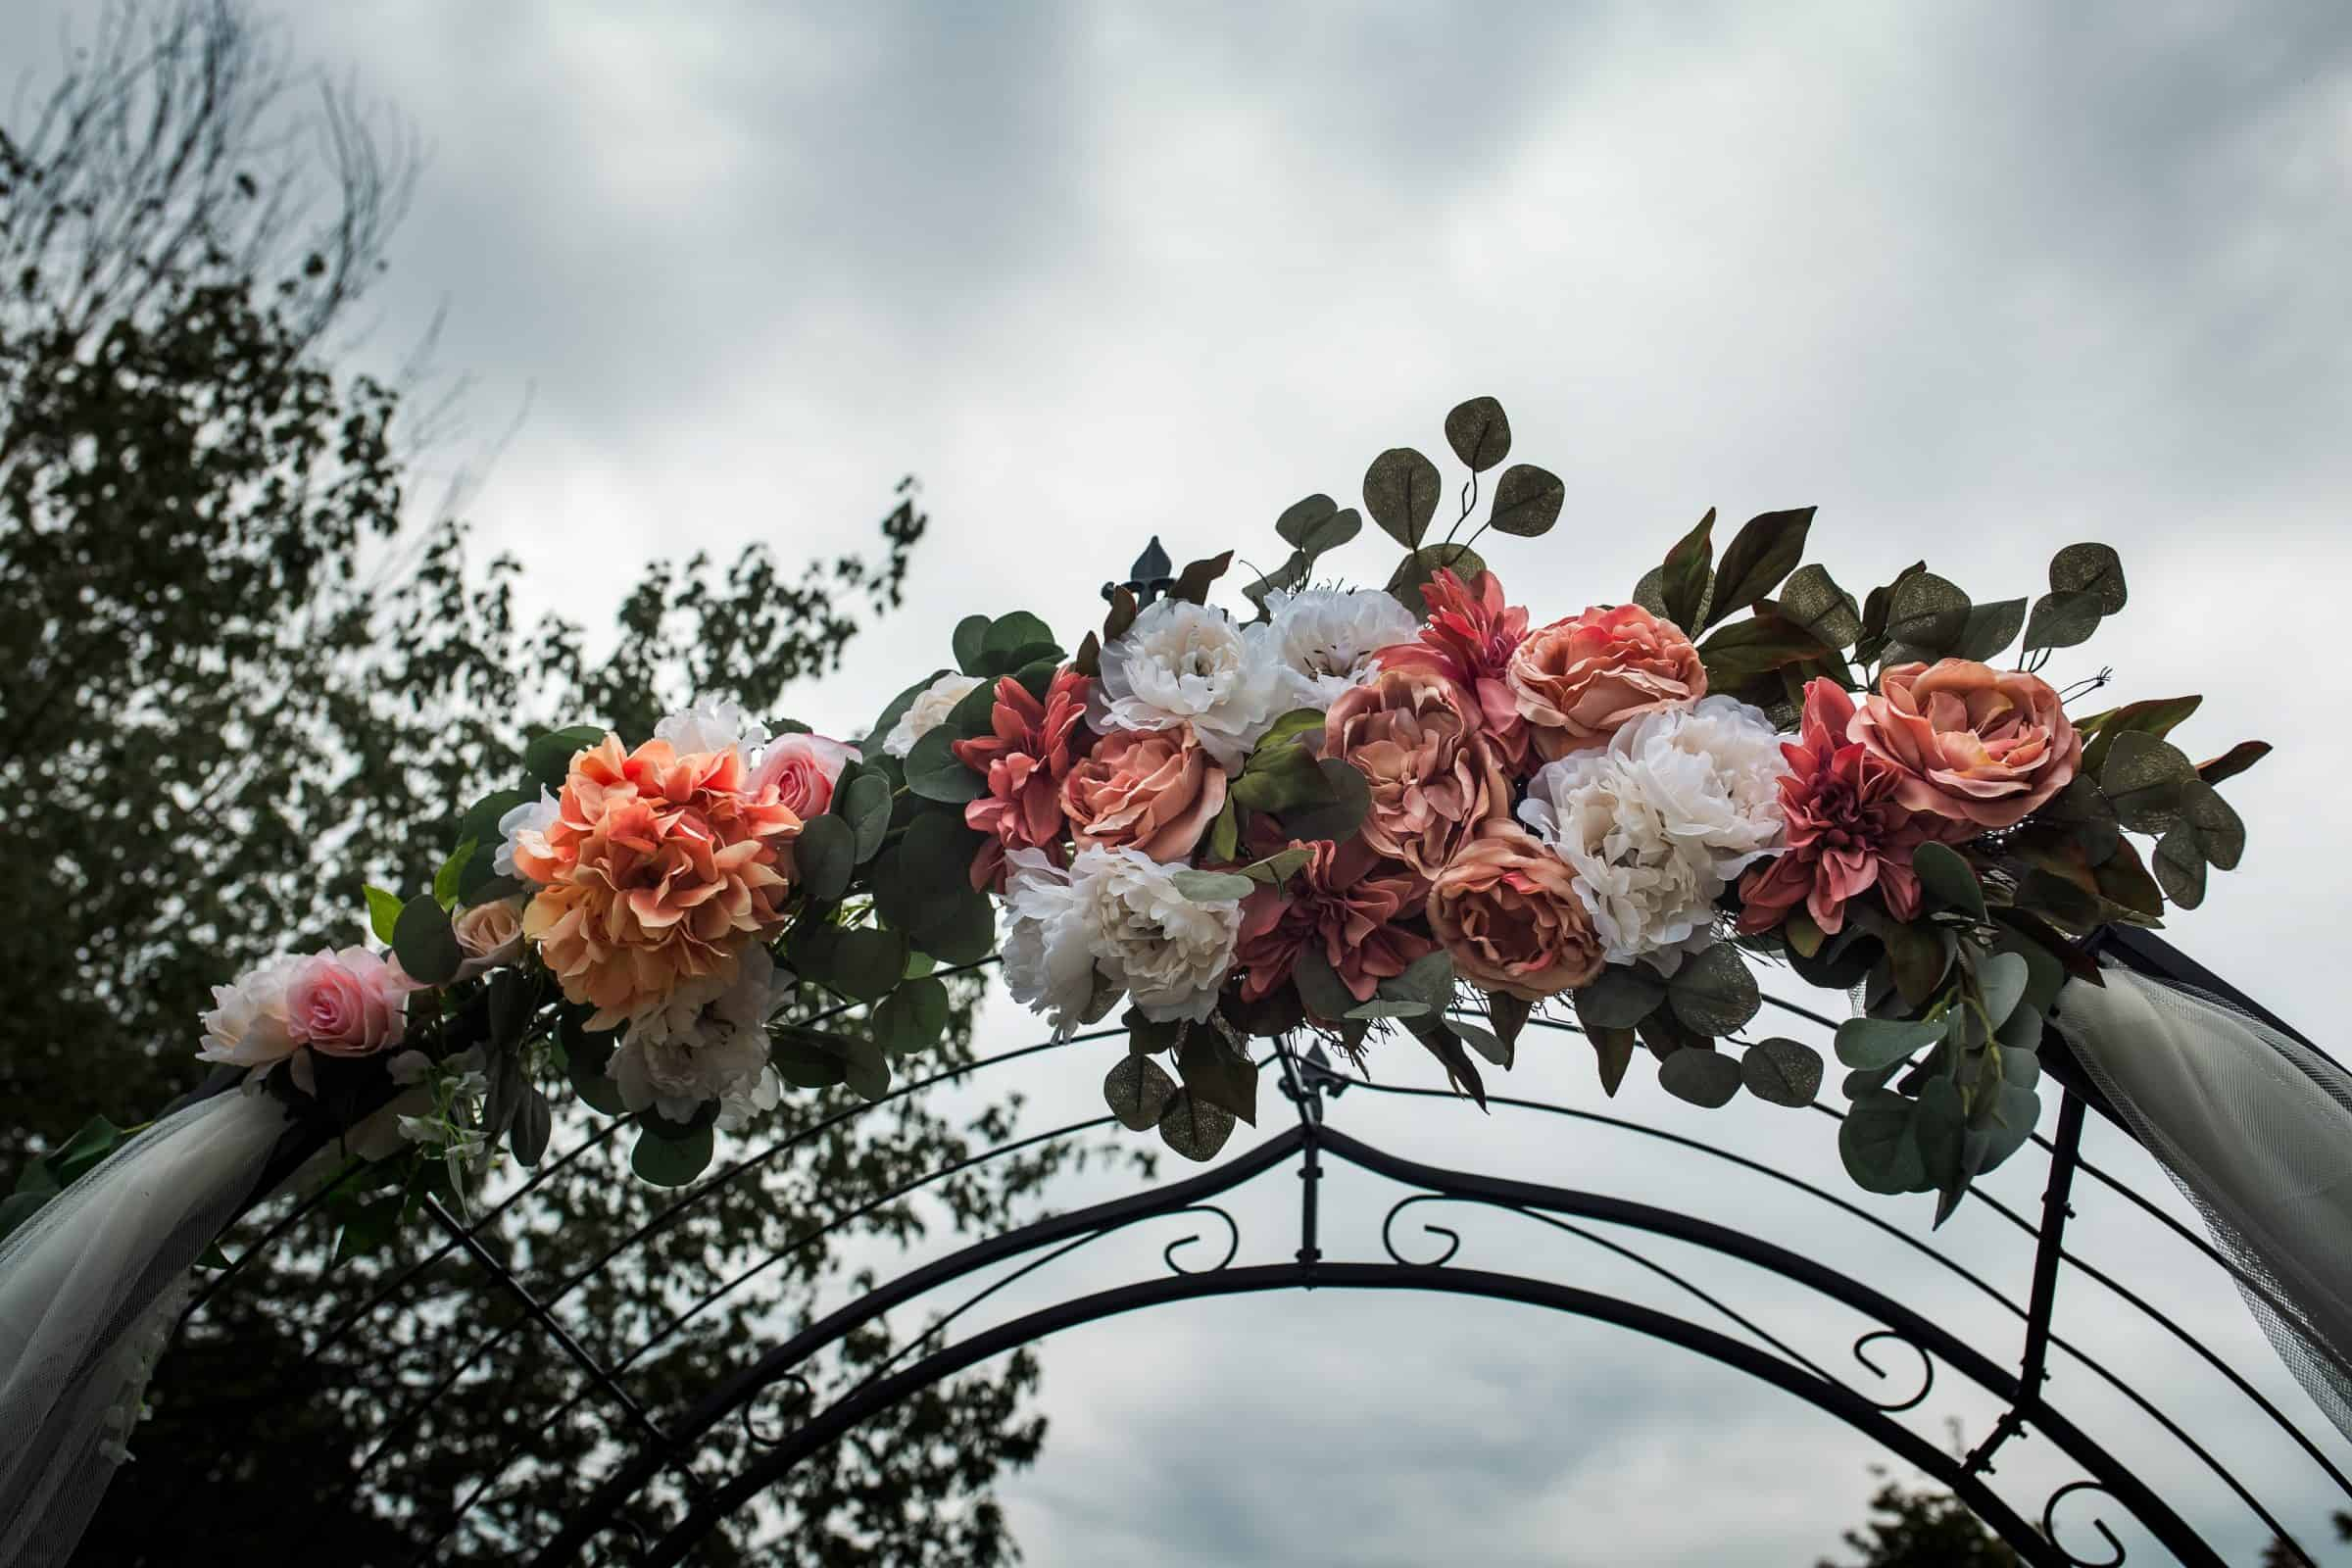 close up of flowers decorating wedding arch